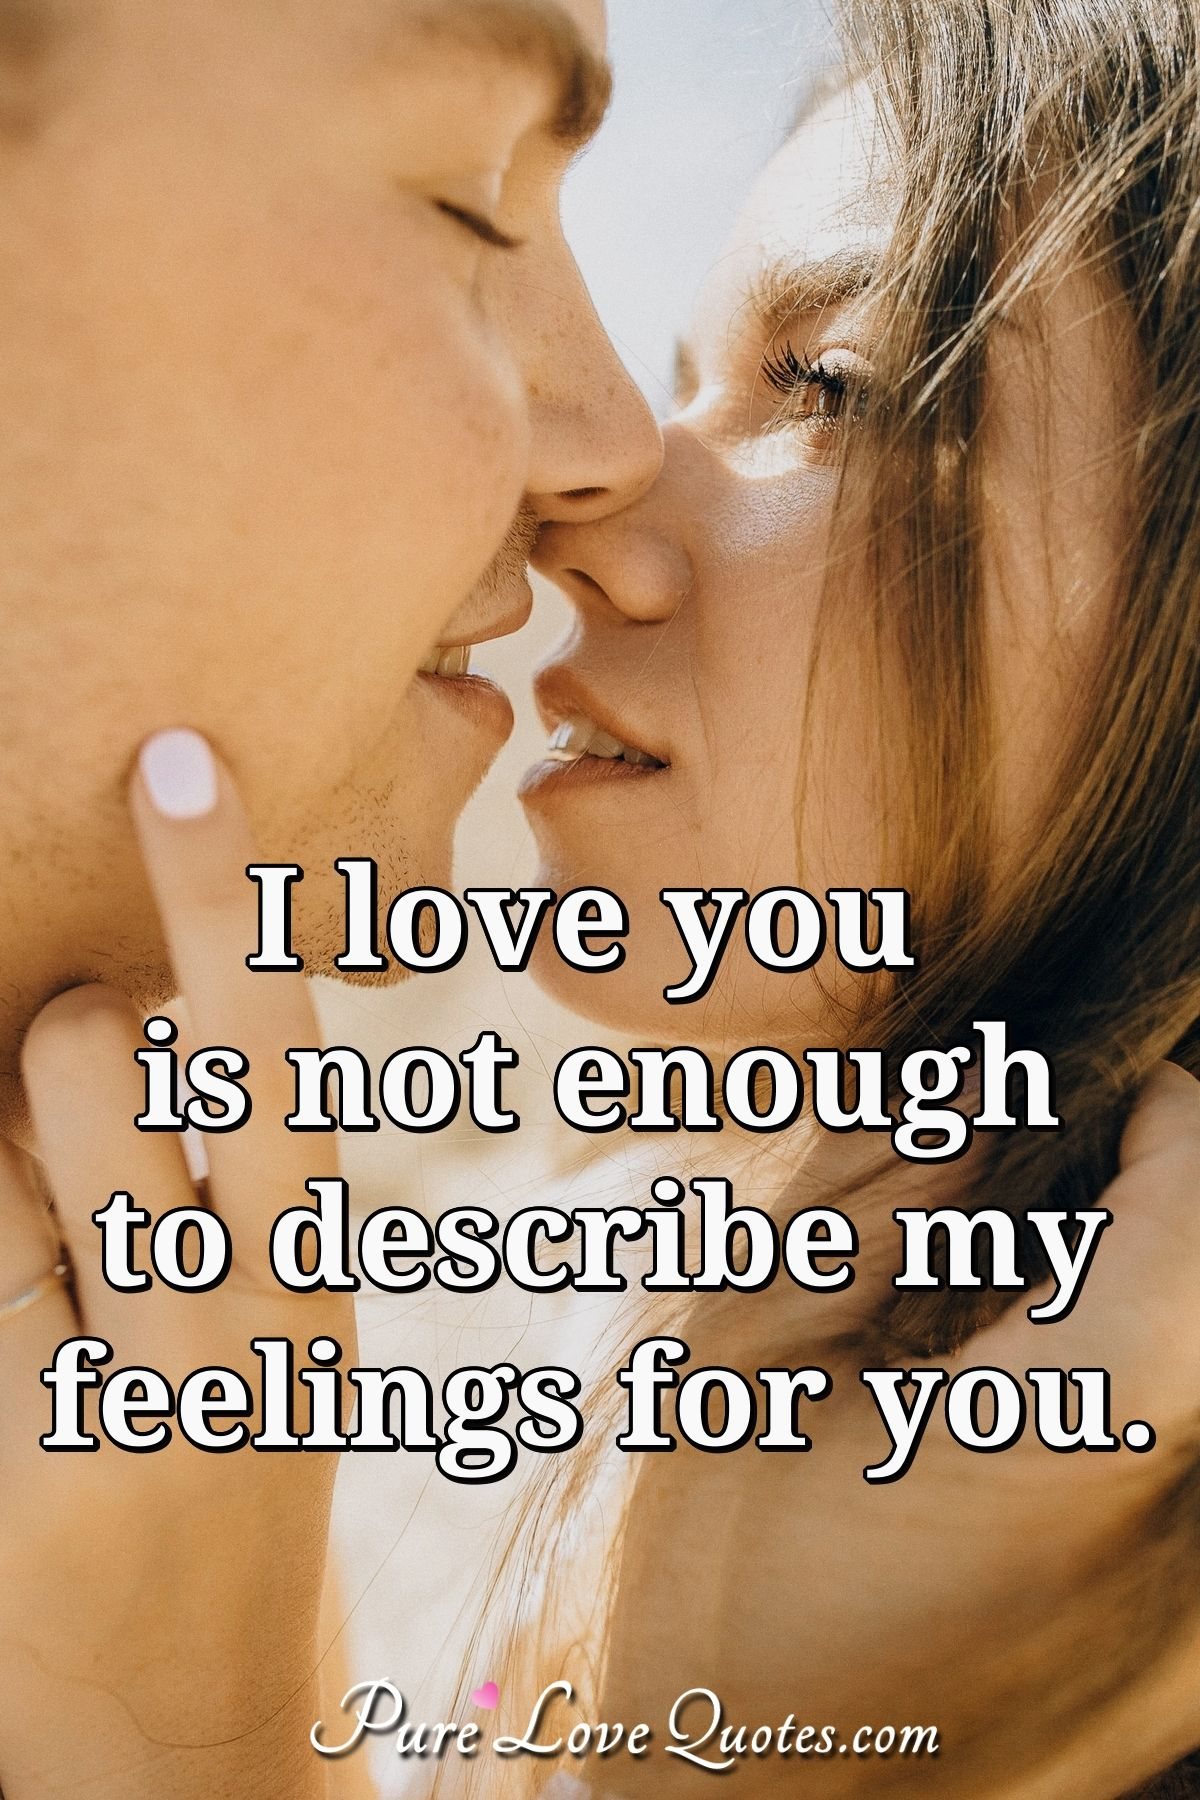 I love you is not enough to describe my feelings for you. - Anonymous